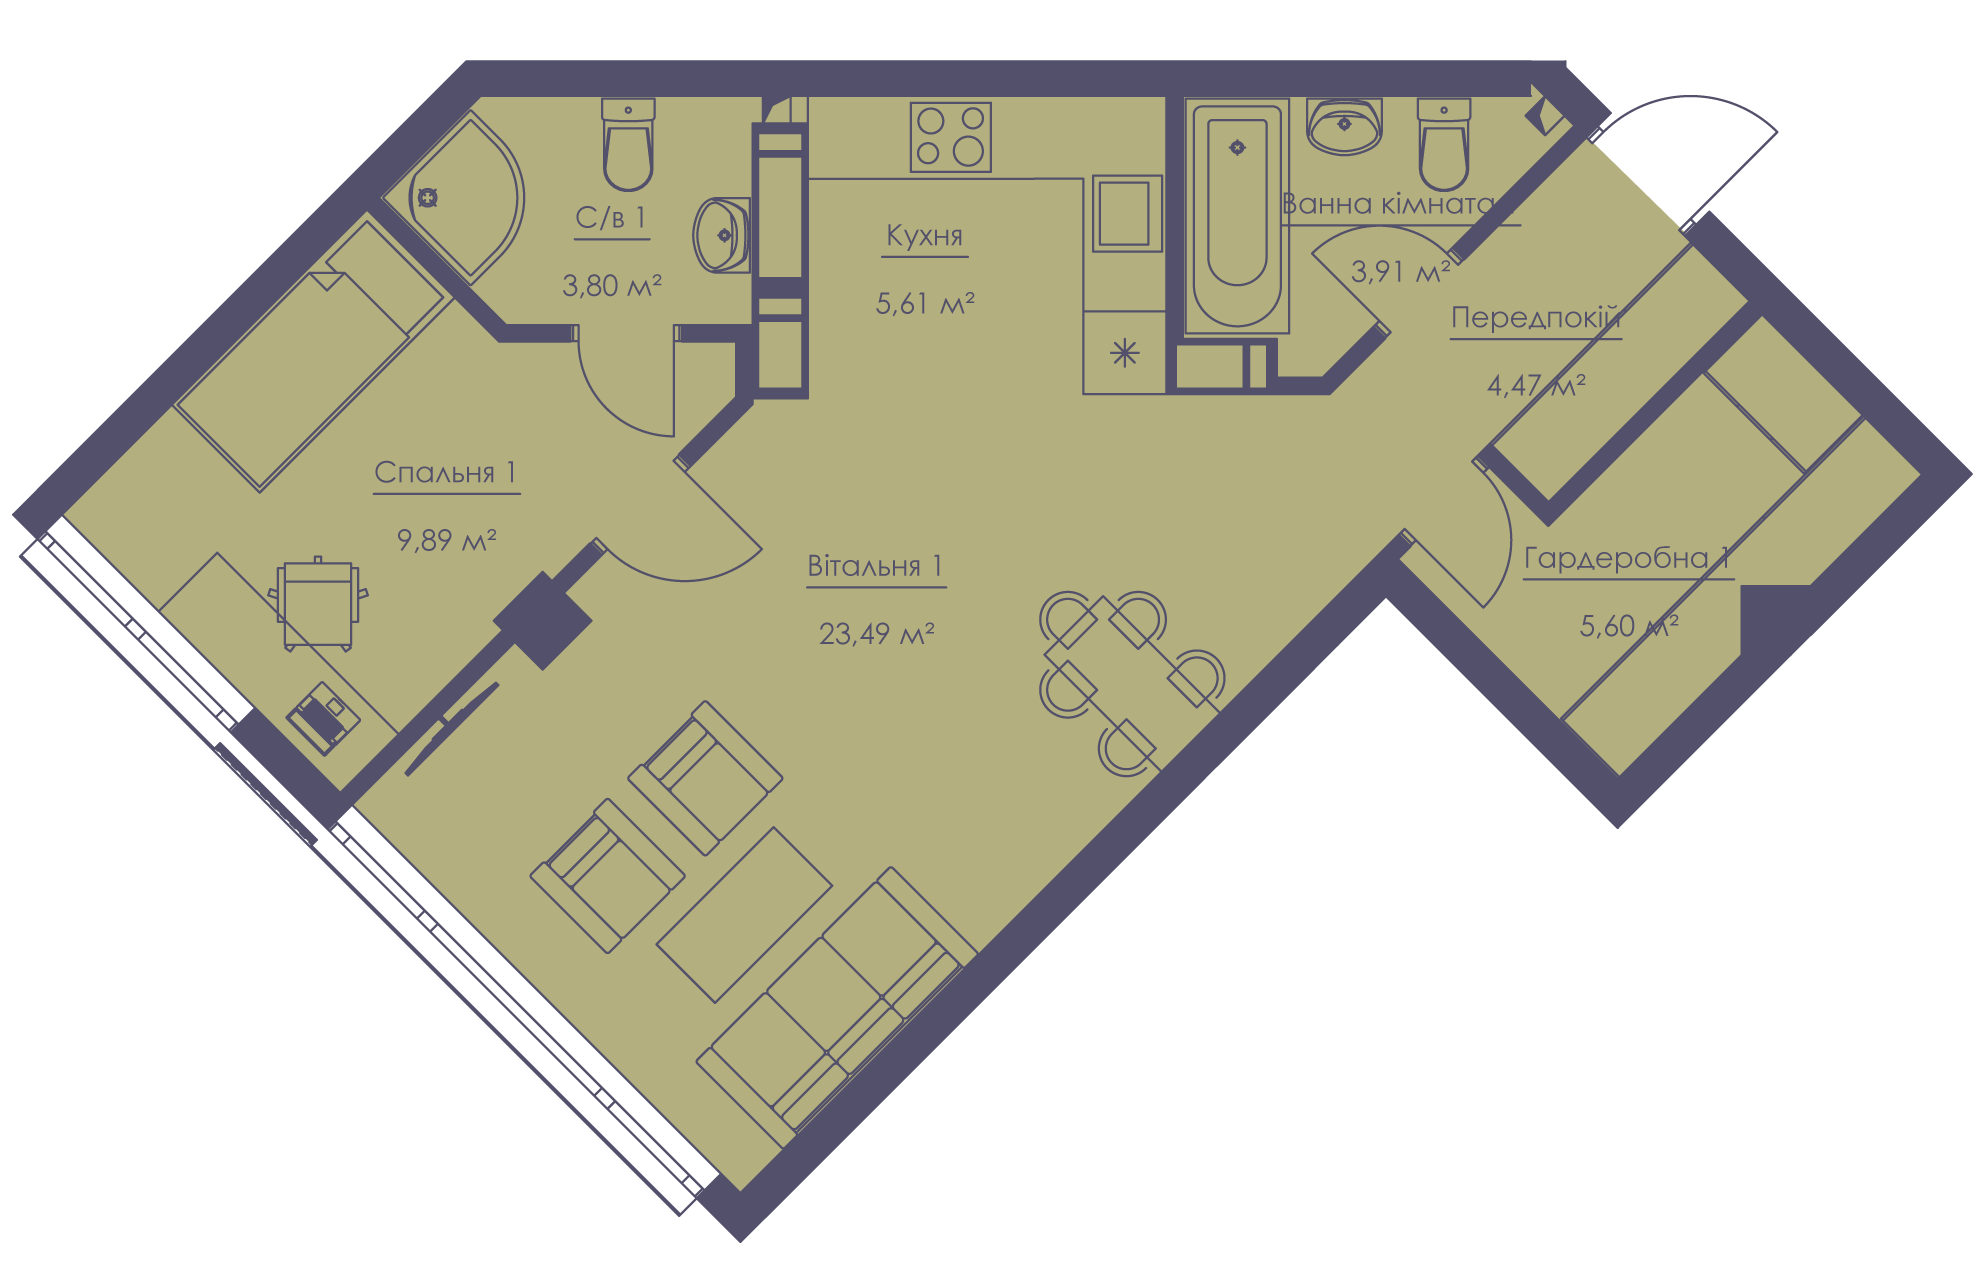 Apartment layout KV_94_2b_1_1_4-1